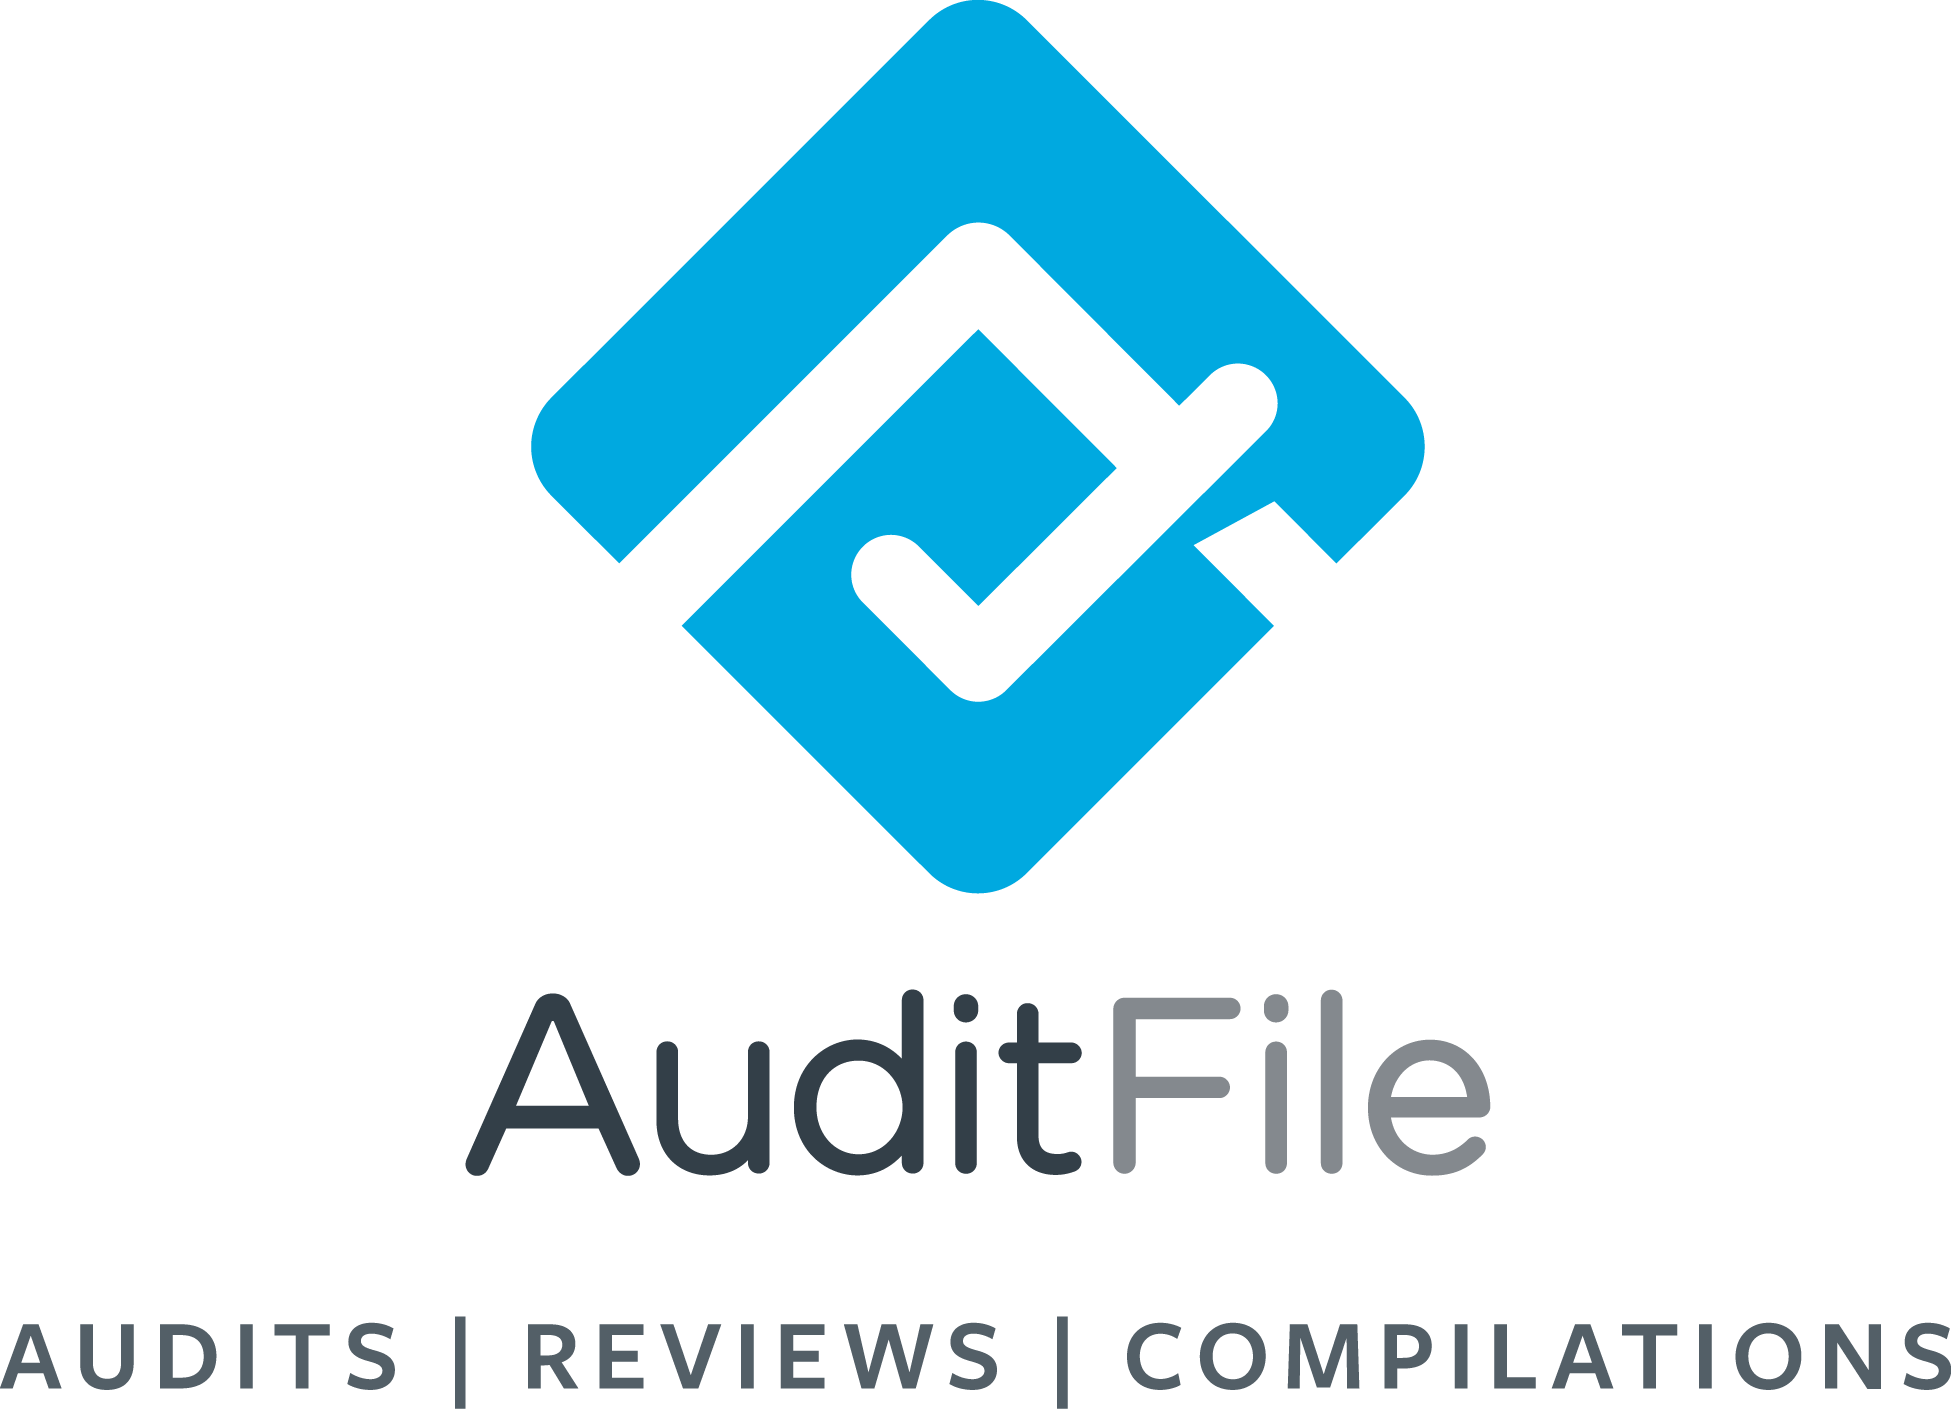 Auditfile logo vertical